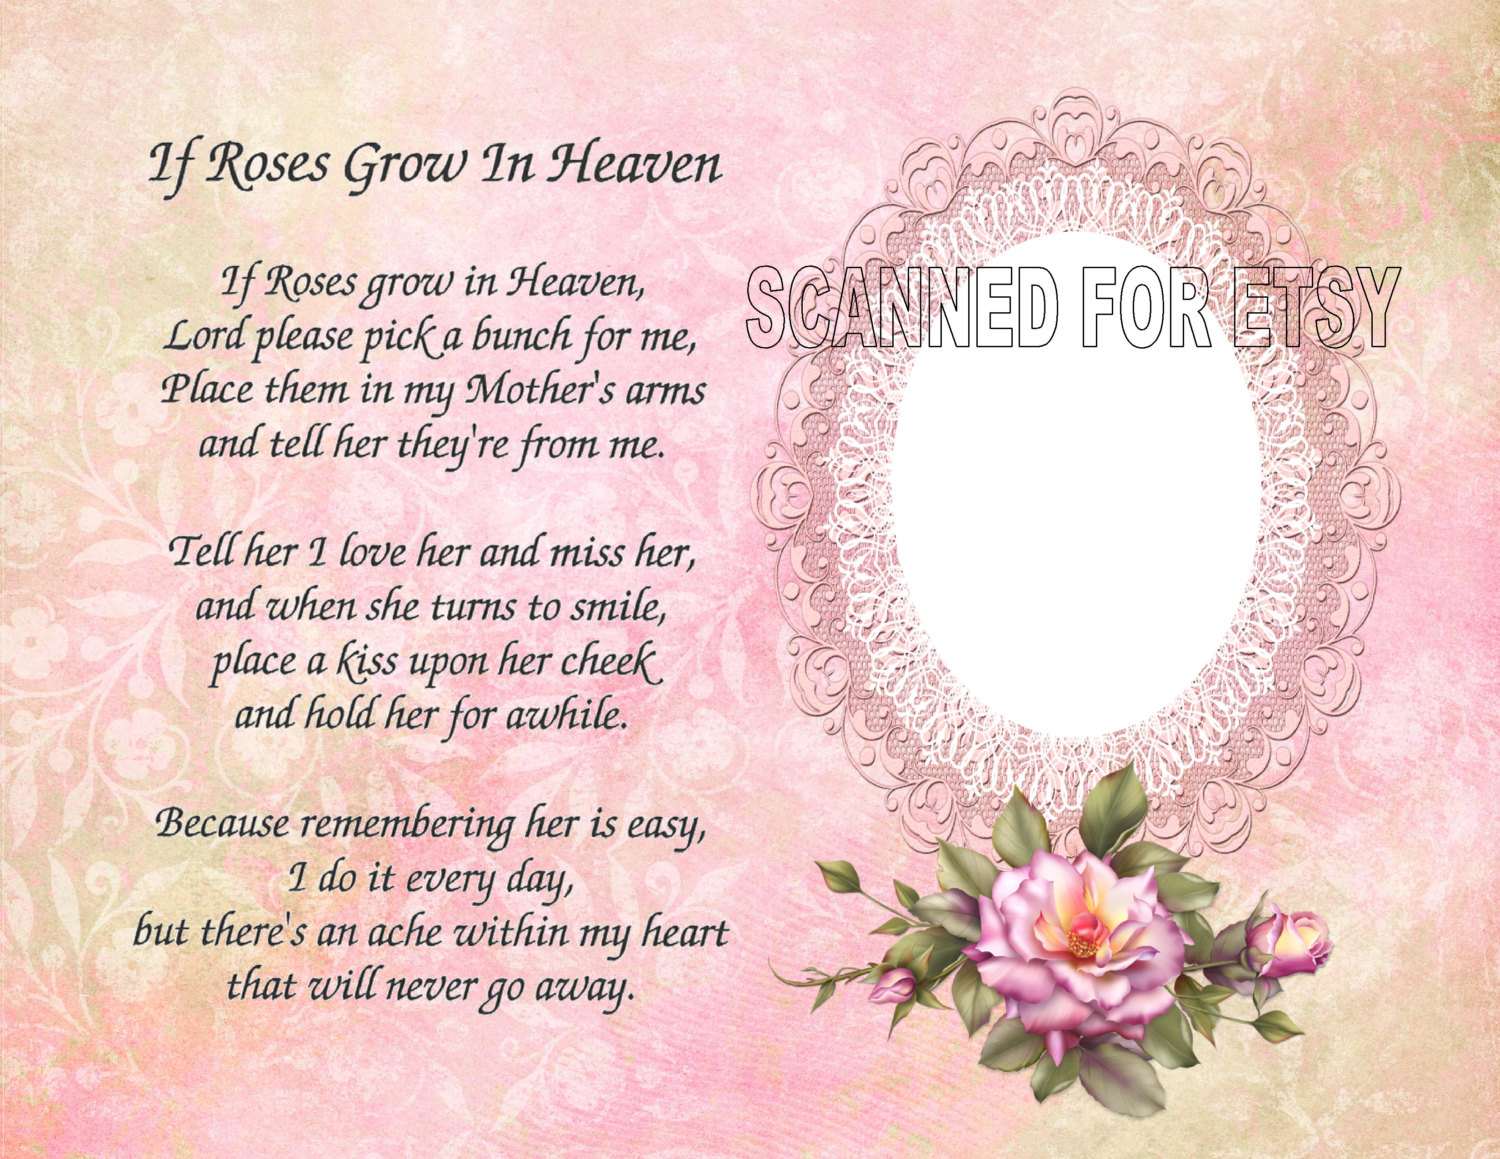 Poems for funeral flowers images flower wallpaper hd poems for funeral flowers image collections flower wallpaper hd flowers for my mom s funeral flowers izmirmasajfo